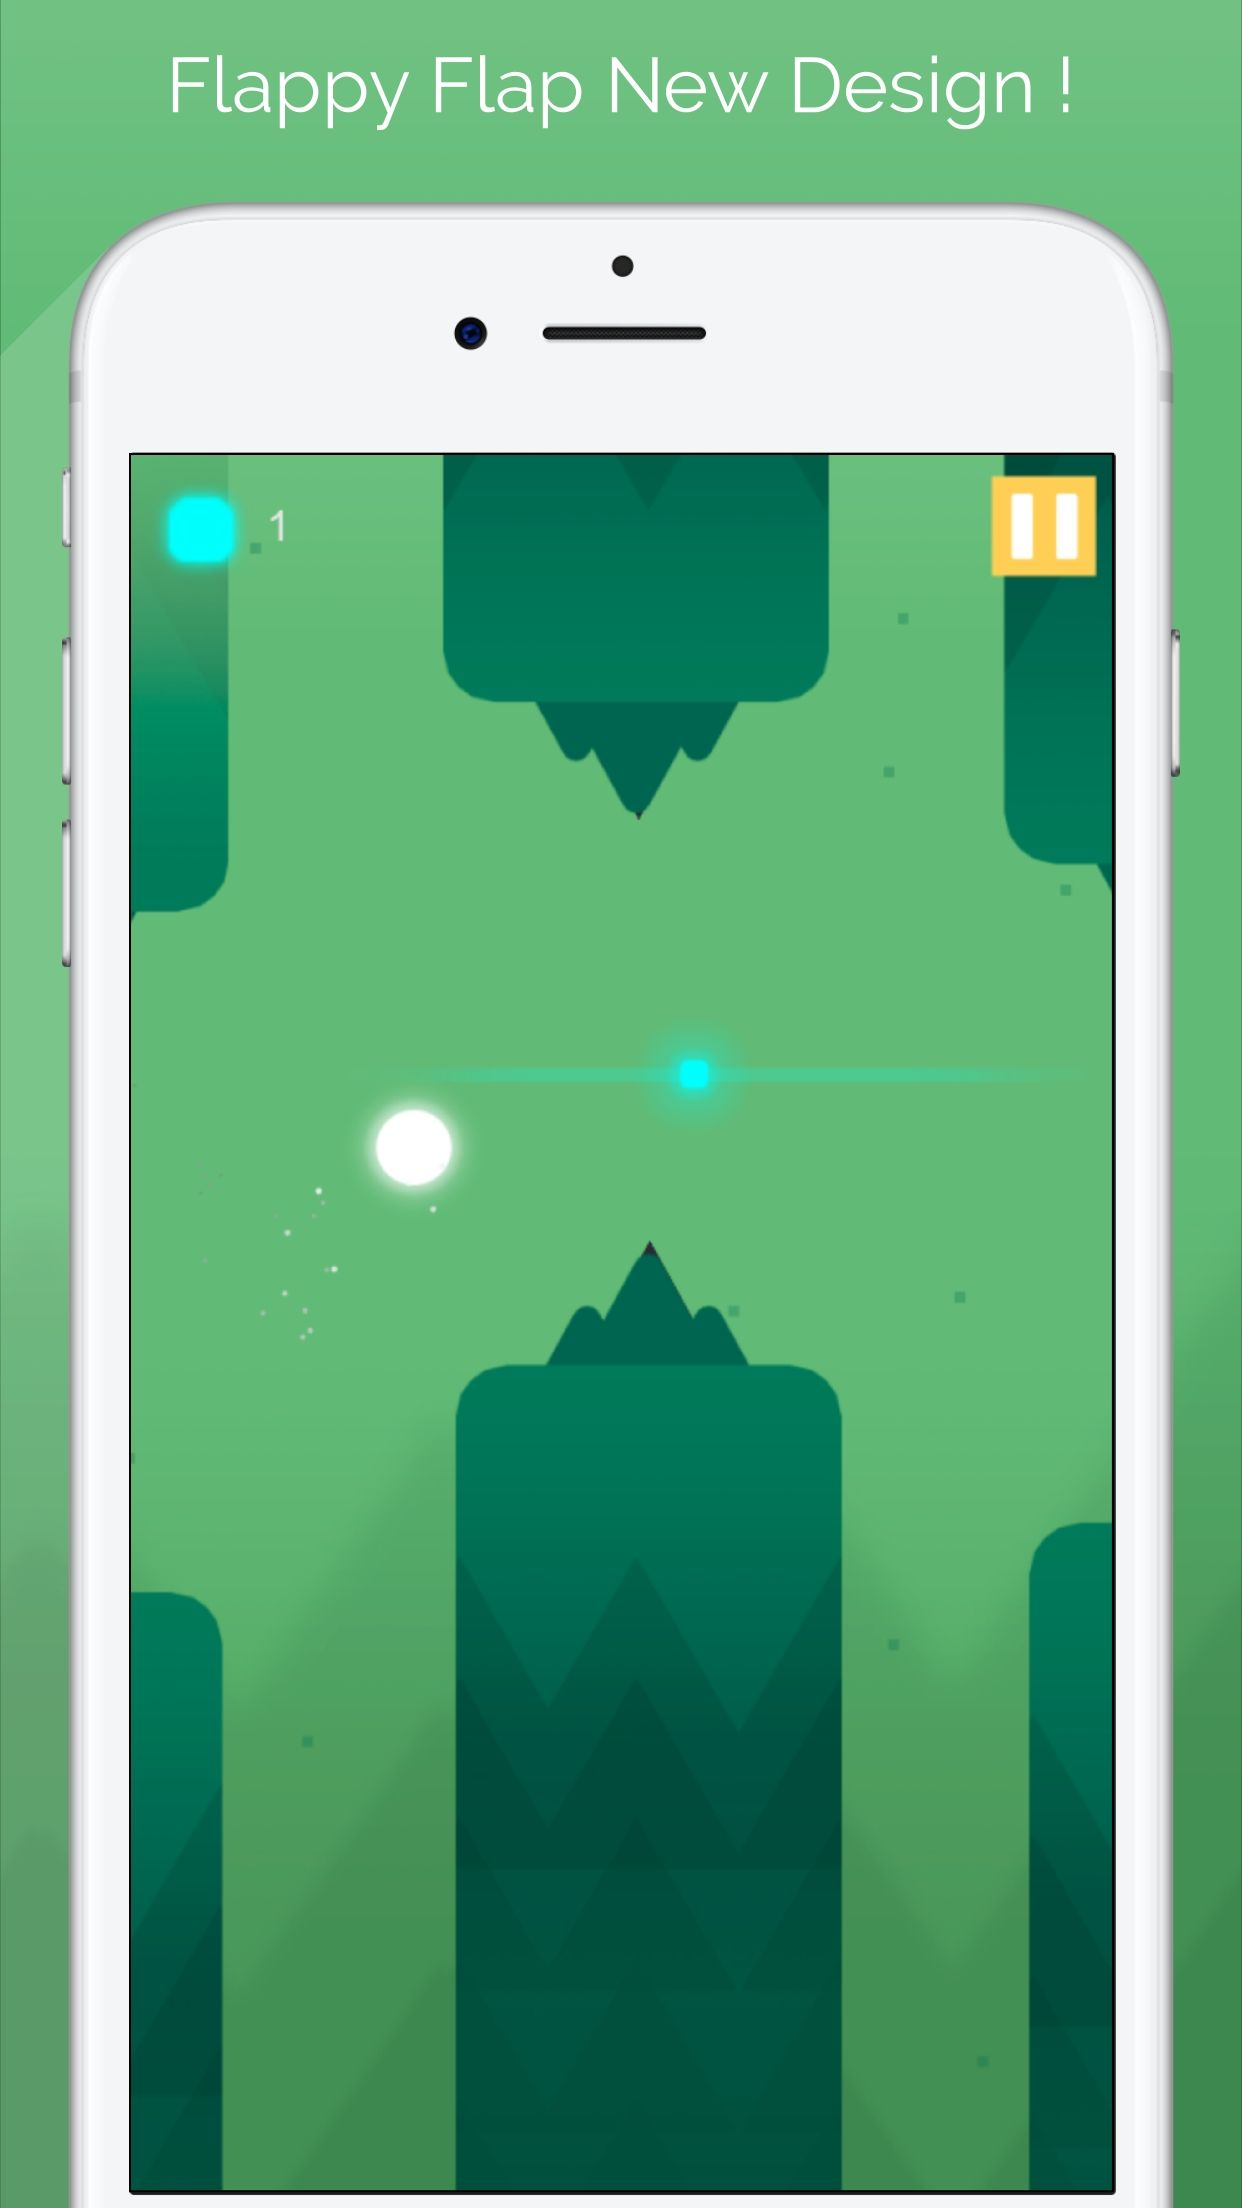 Flappy Flap - Buildbox Template Screenshot 1